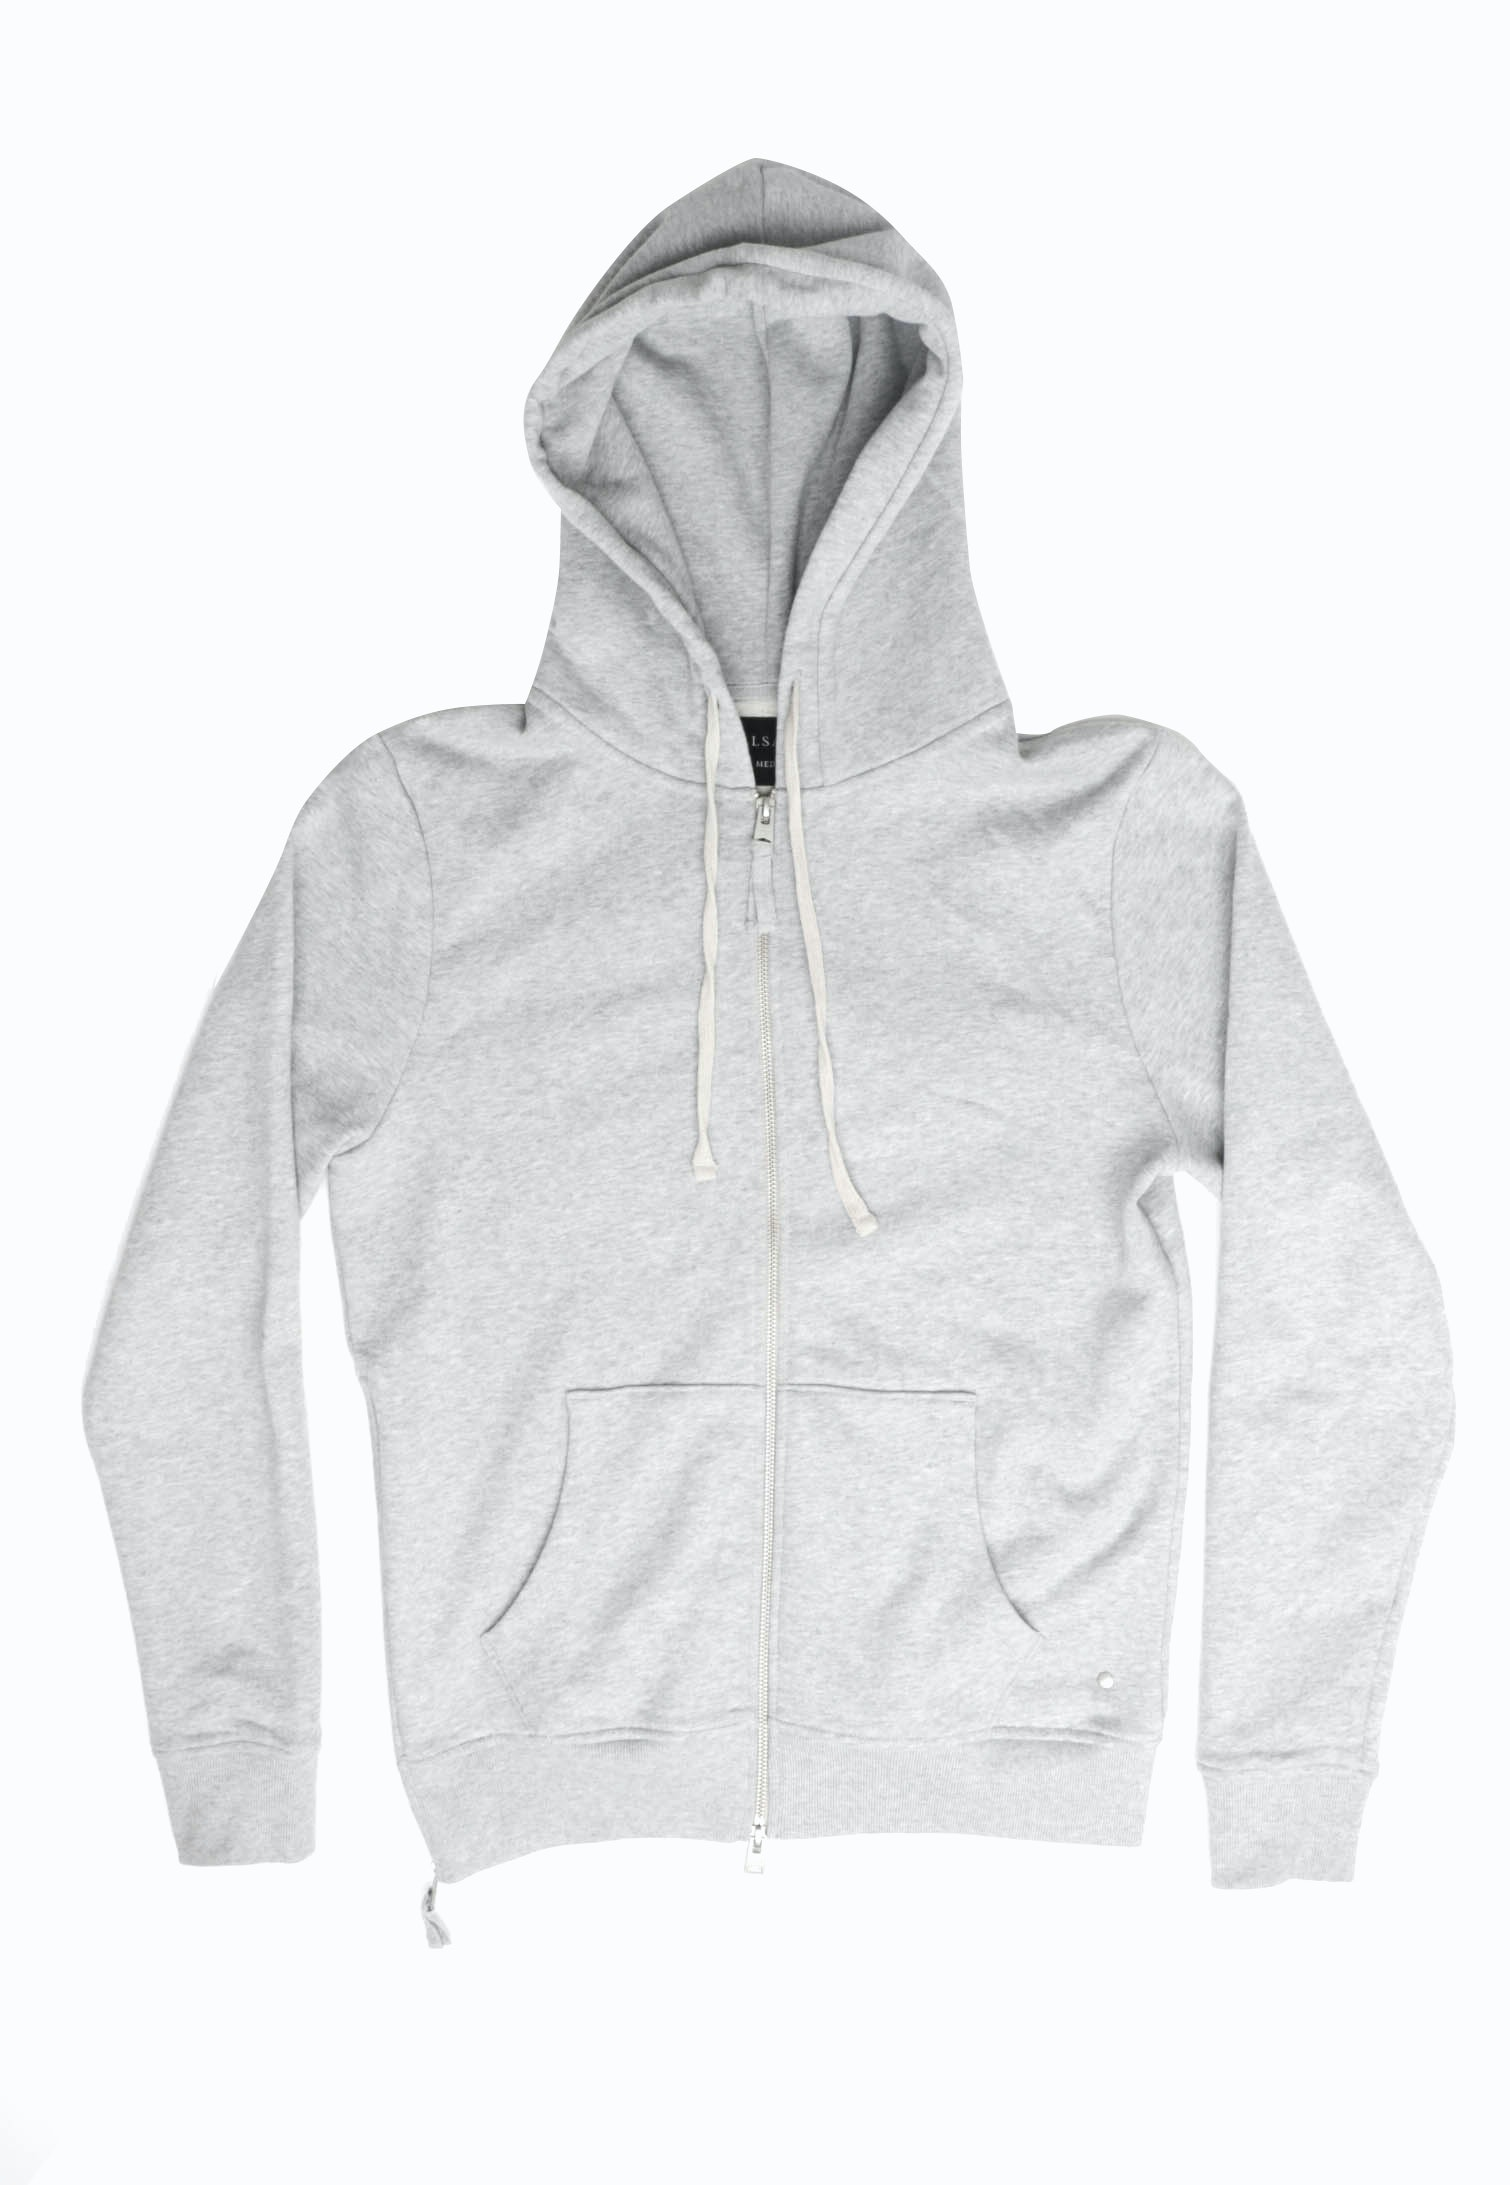 All Saints Norths Hoody - Grey Marle